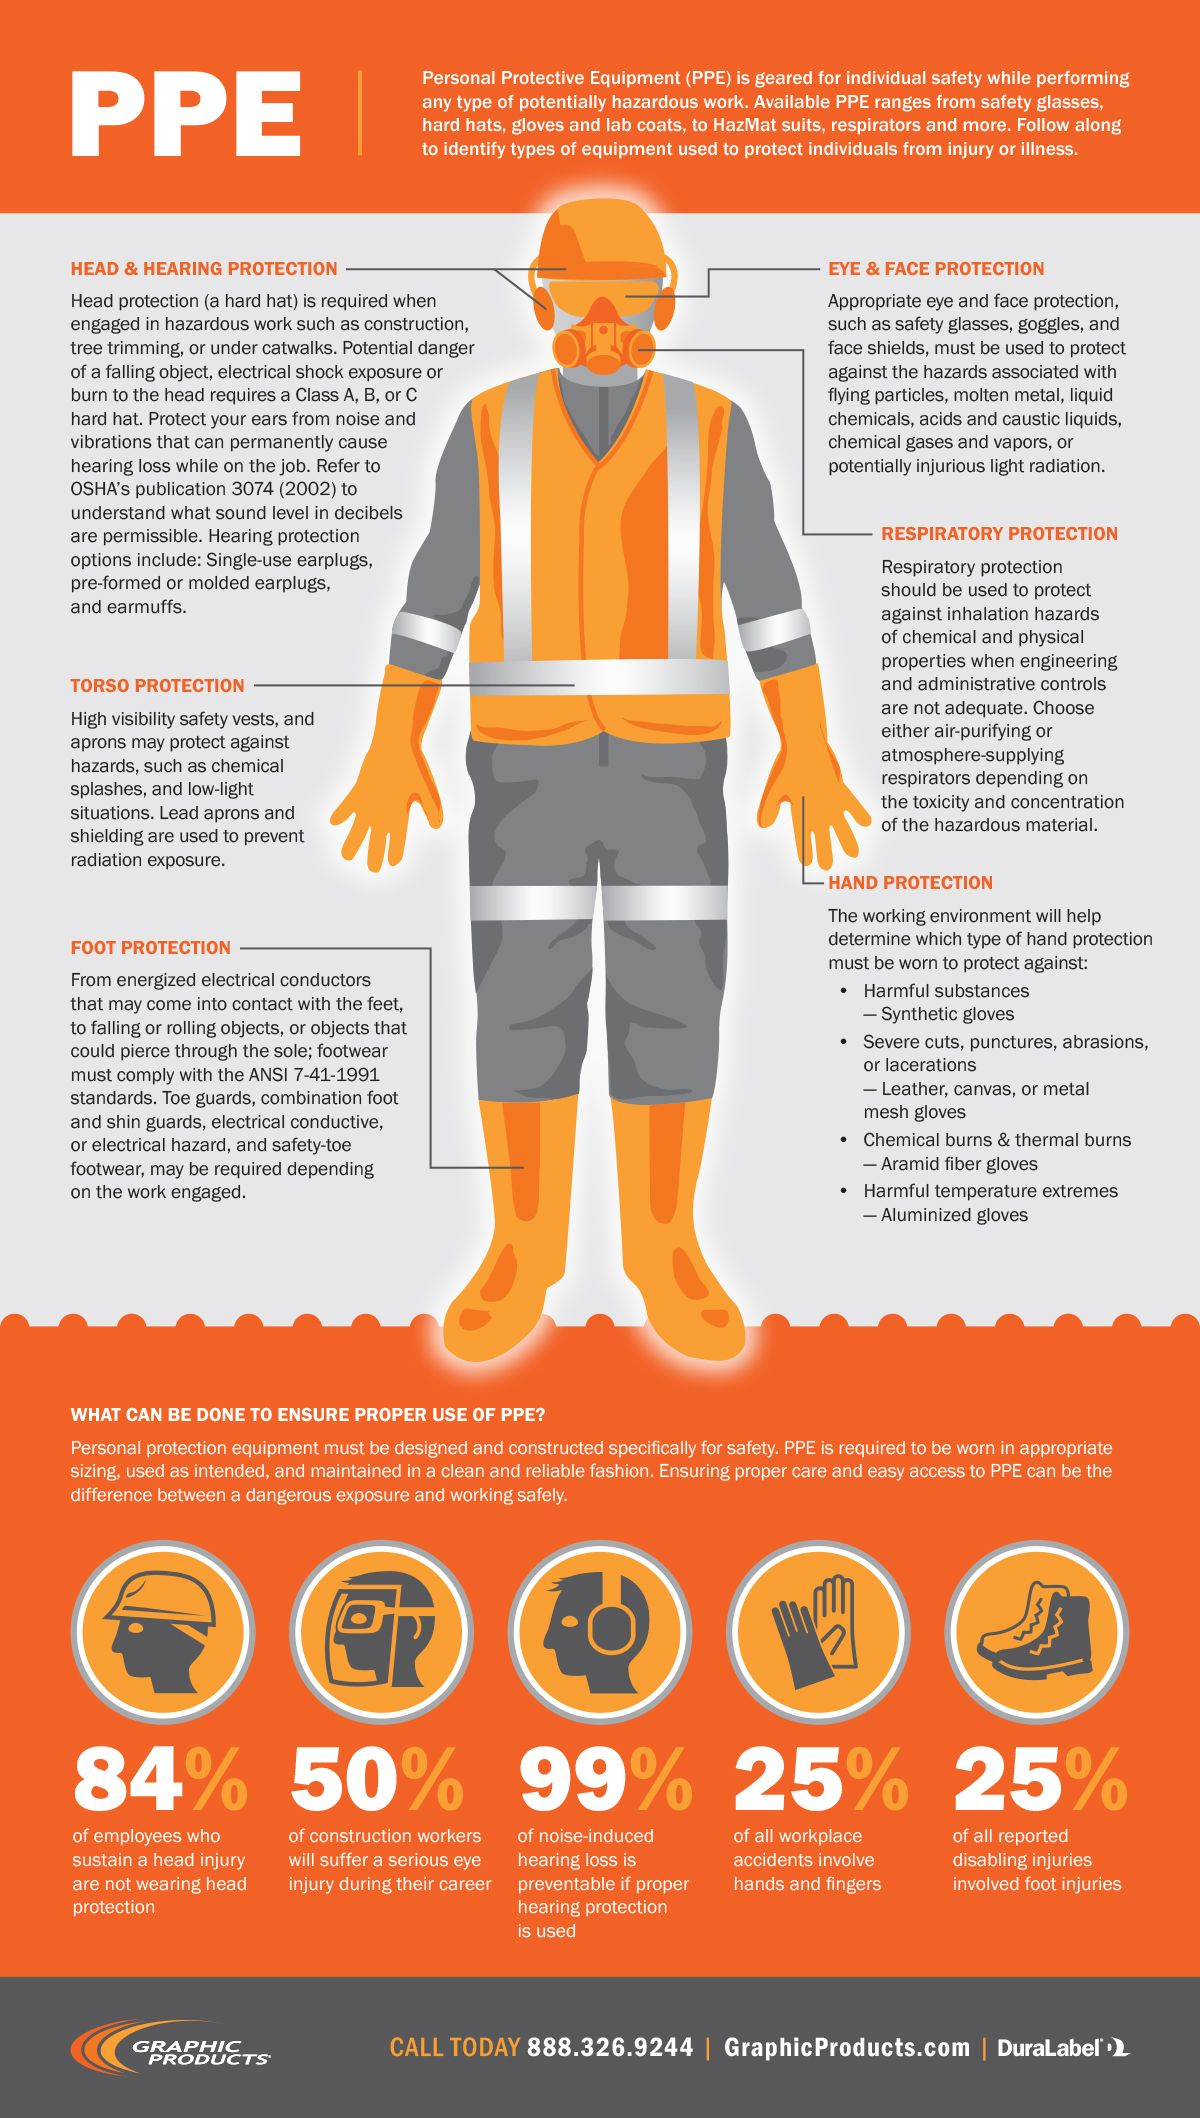 ppeinfographic.jpg (1) Health and safety poster, Safety